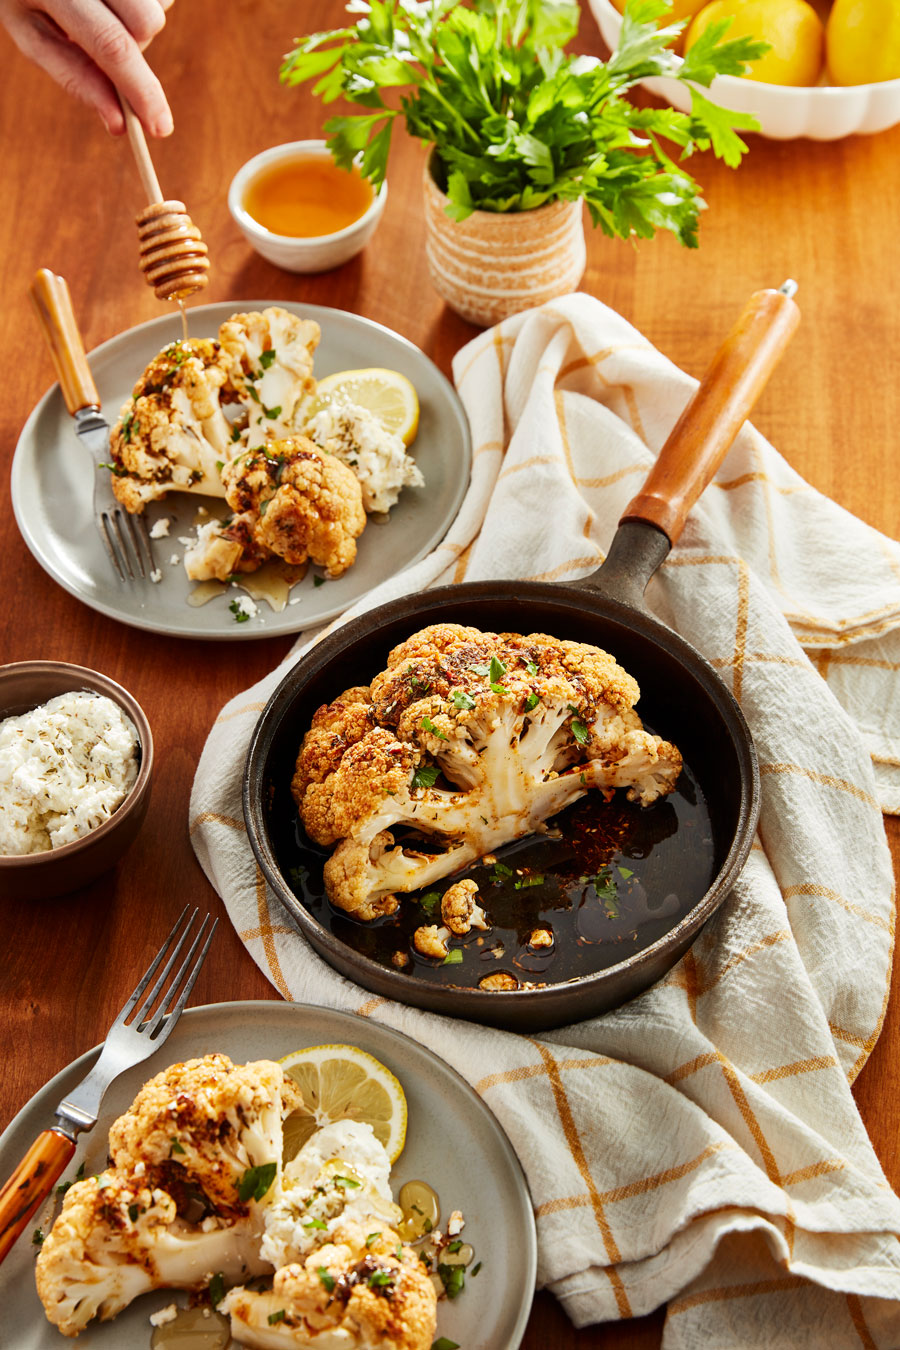 A skillet of roasted cauliflower surrounded by served plates.